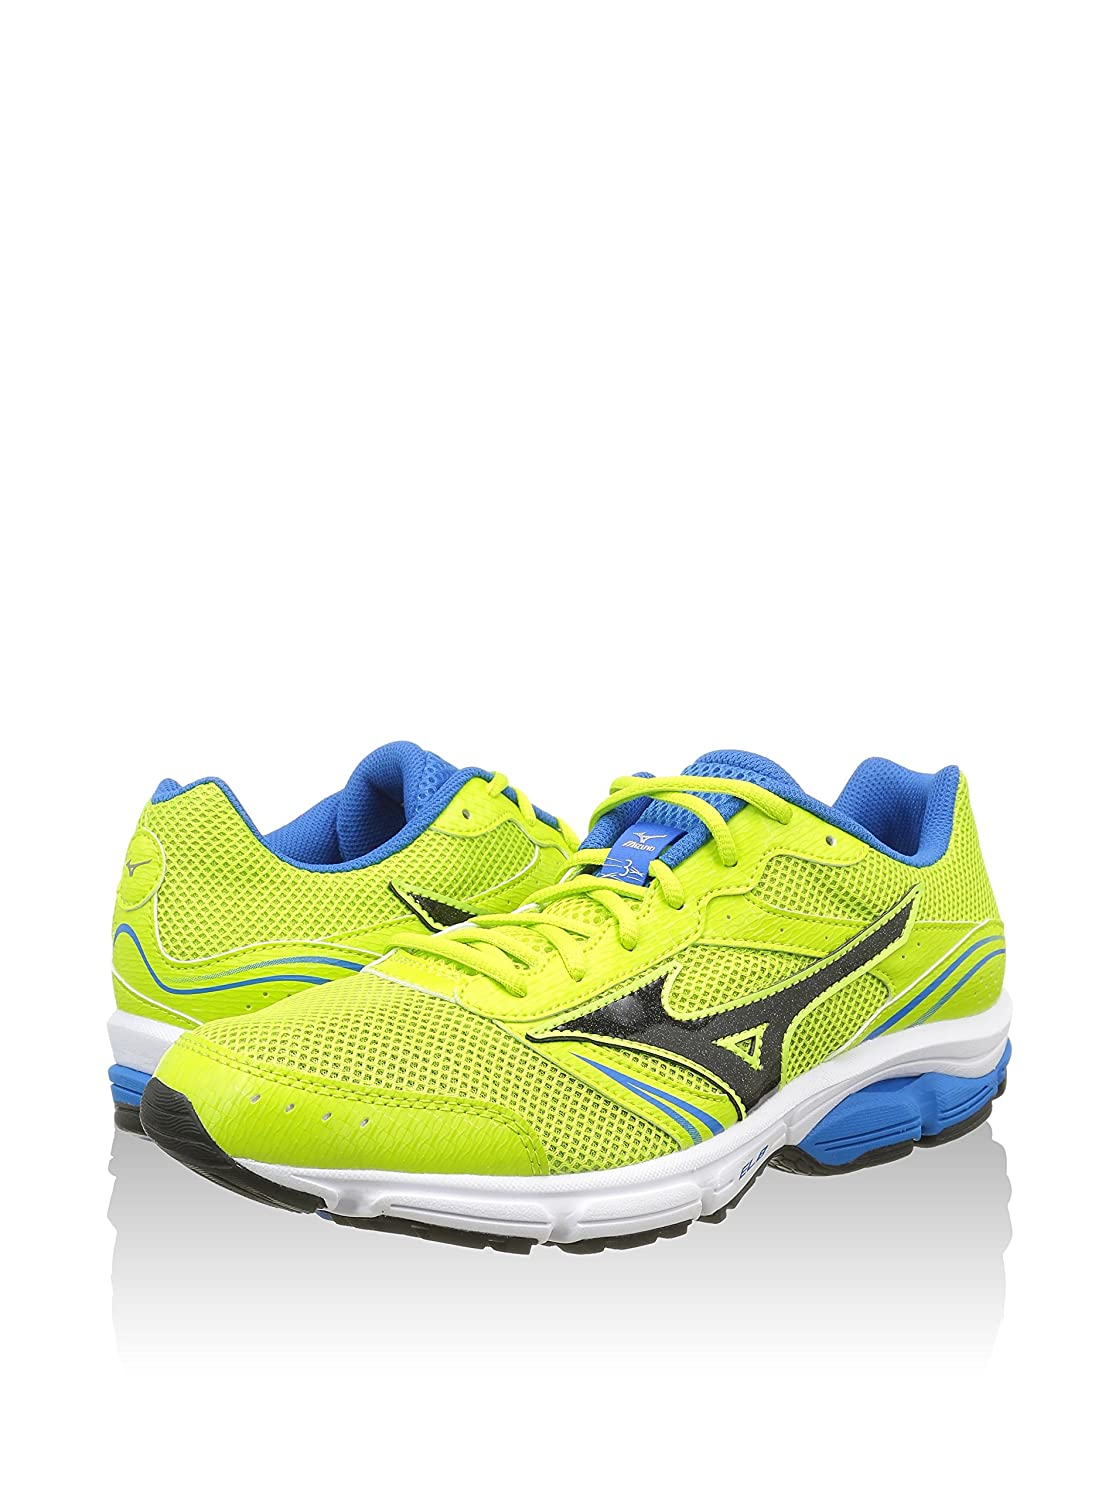 Mizuno Shoes Running Officially Wave Impetus 3 J1GE151311 Lime Nero Royal Size 40 SHIPPED FROM ITALY Pb24lF